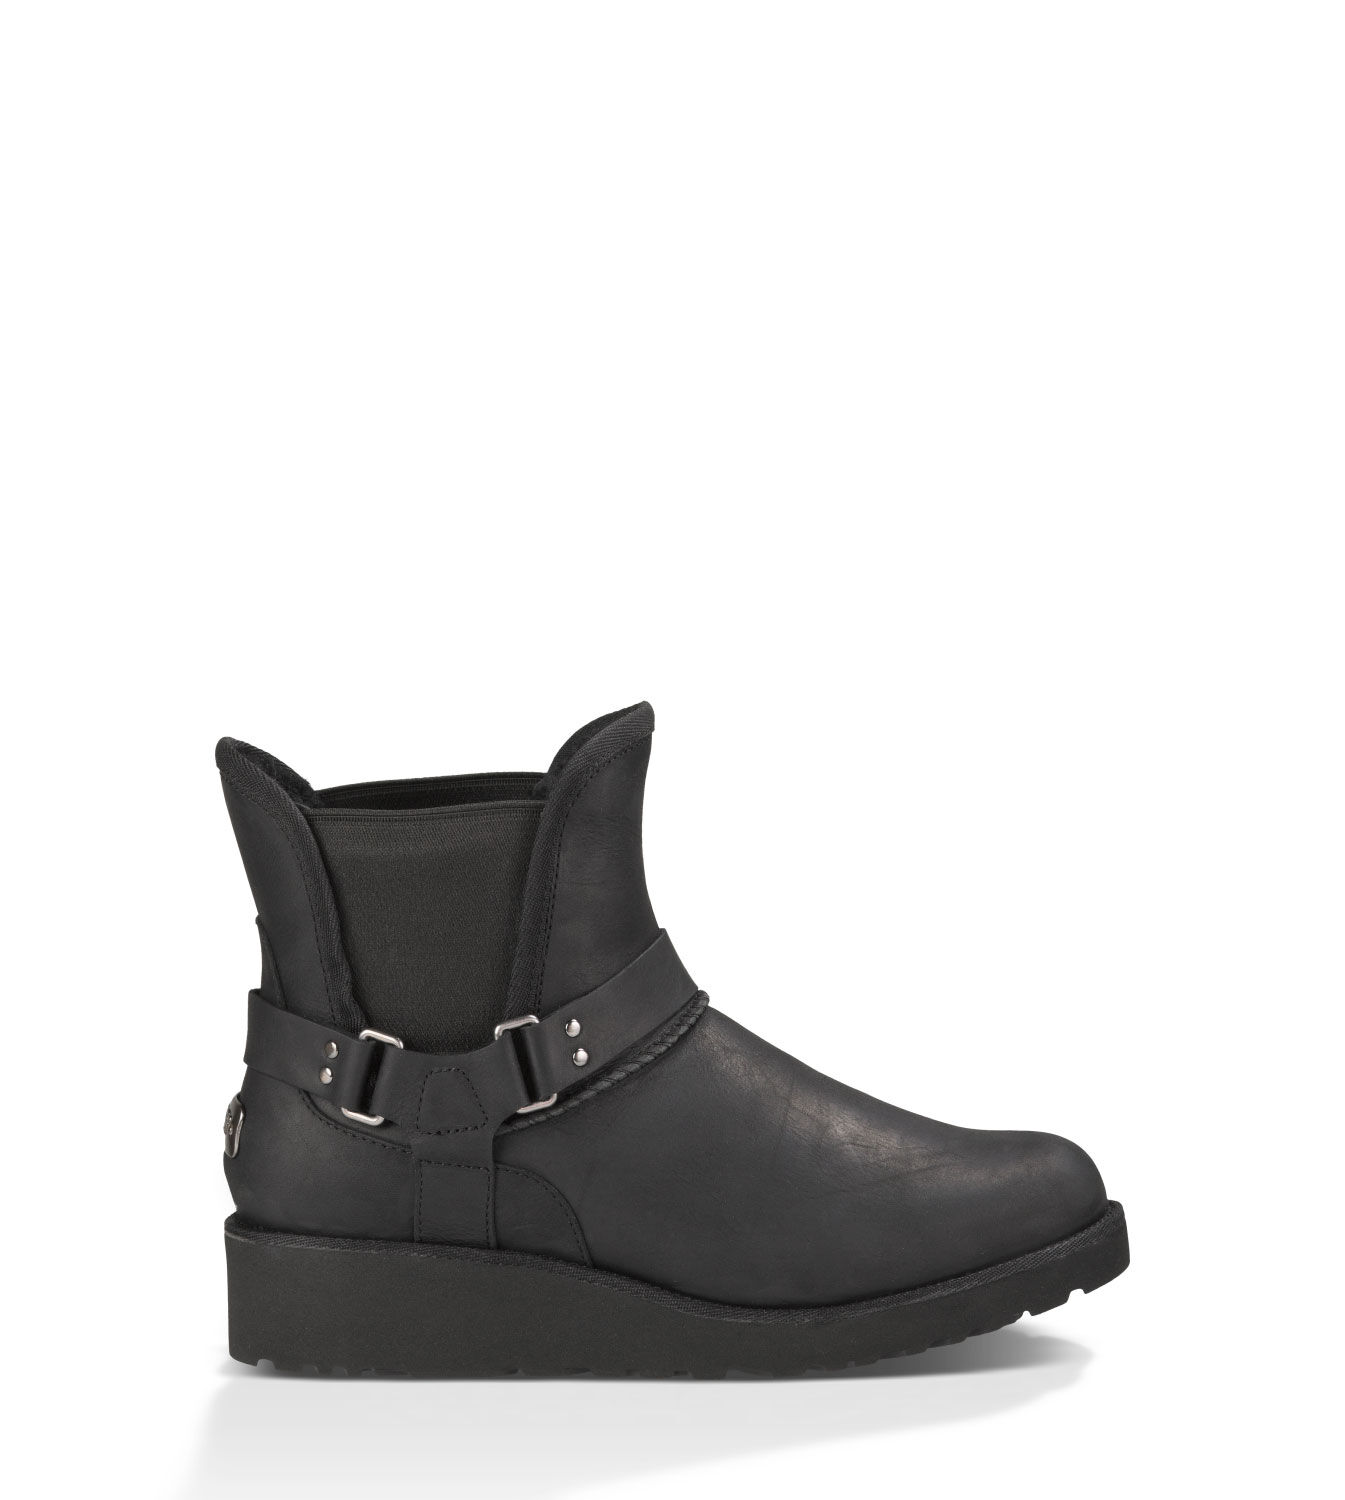 b7425ffbe33 Ugg Gillespie Tall Boot